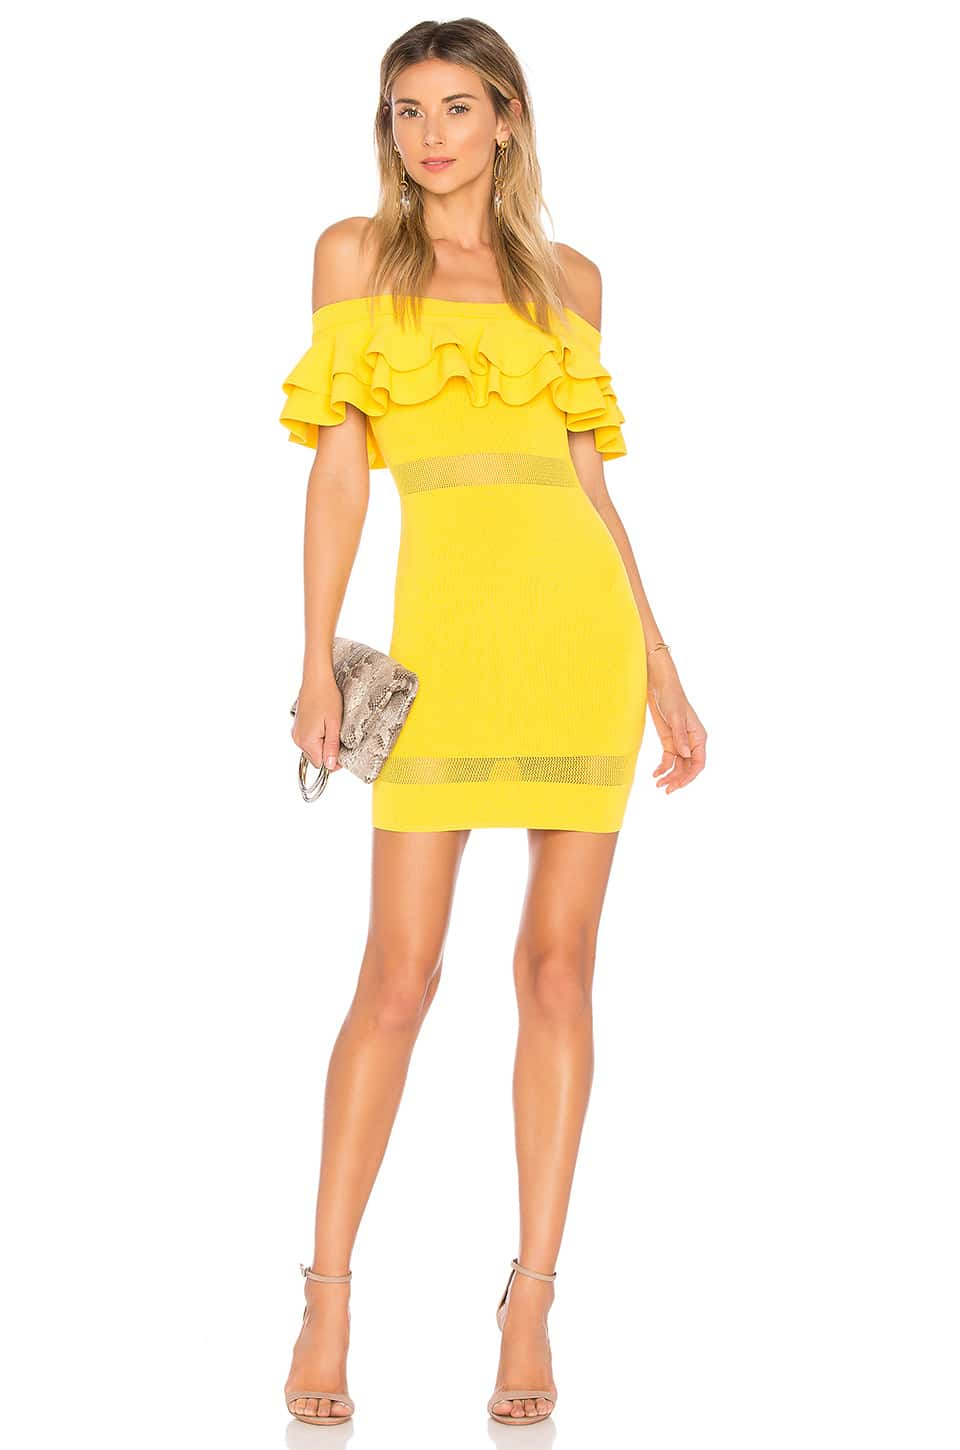 BY THE WAY. Emilie Tiered Knit Yellow Dress - We Select Dresses